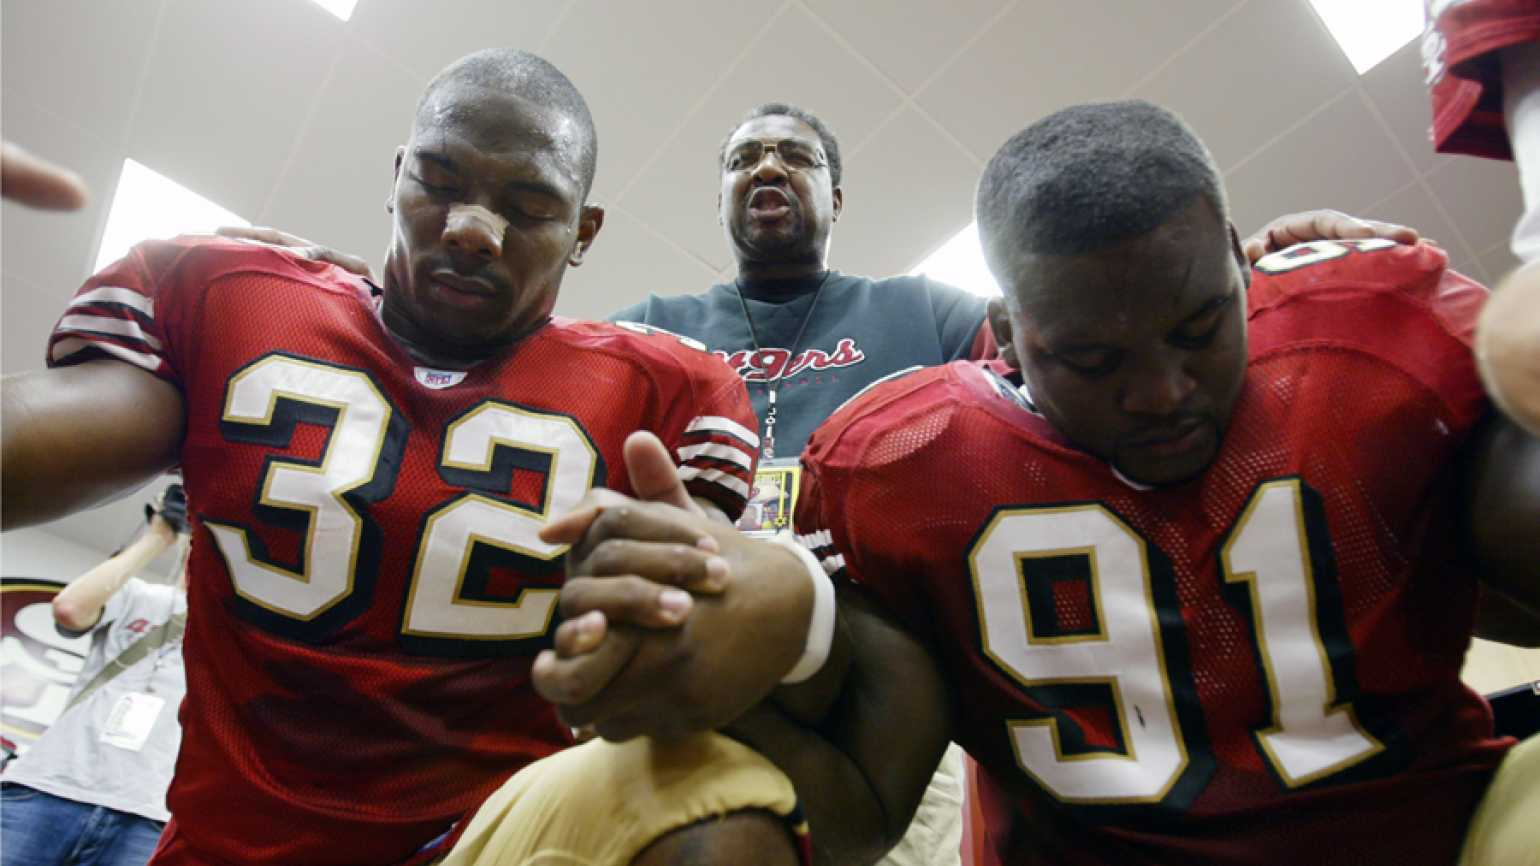 Smith prays with Kevan Barlow (left) and Anthony Adams in the locker room before a game.